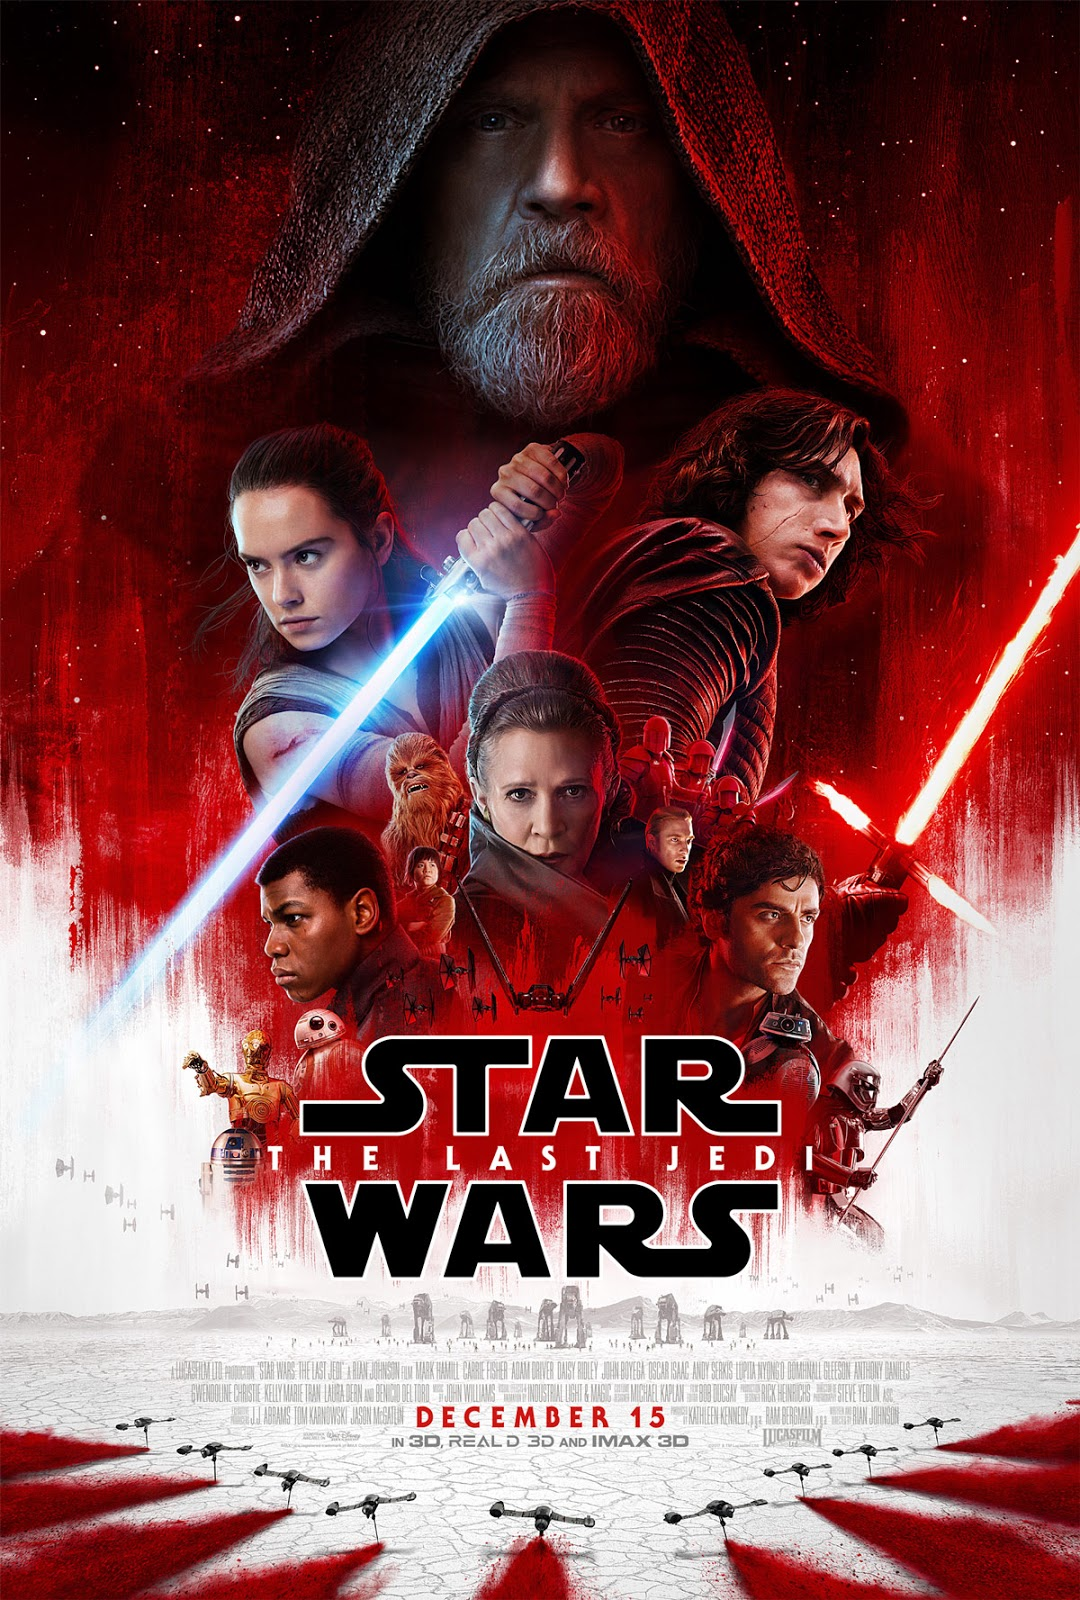 Star Wars Episode VIII The Last Jedi theatrical iconic poster